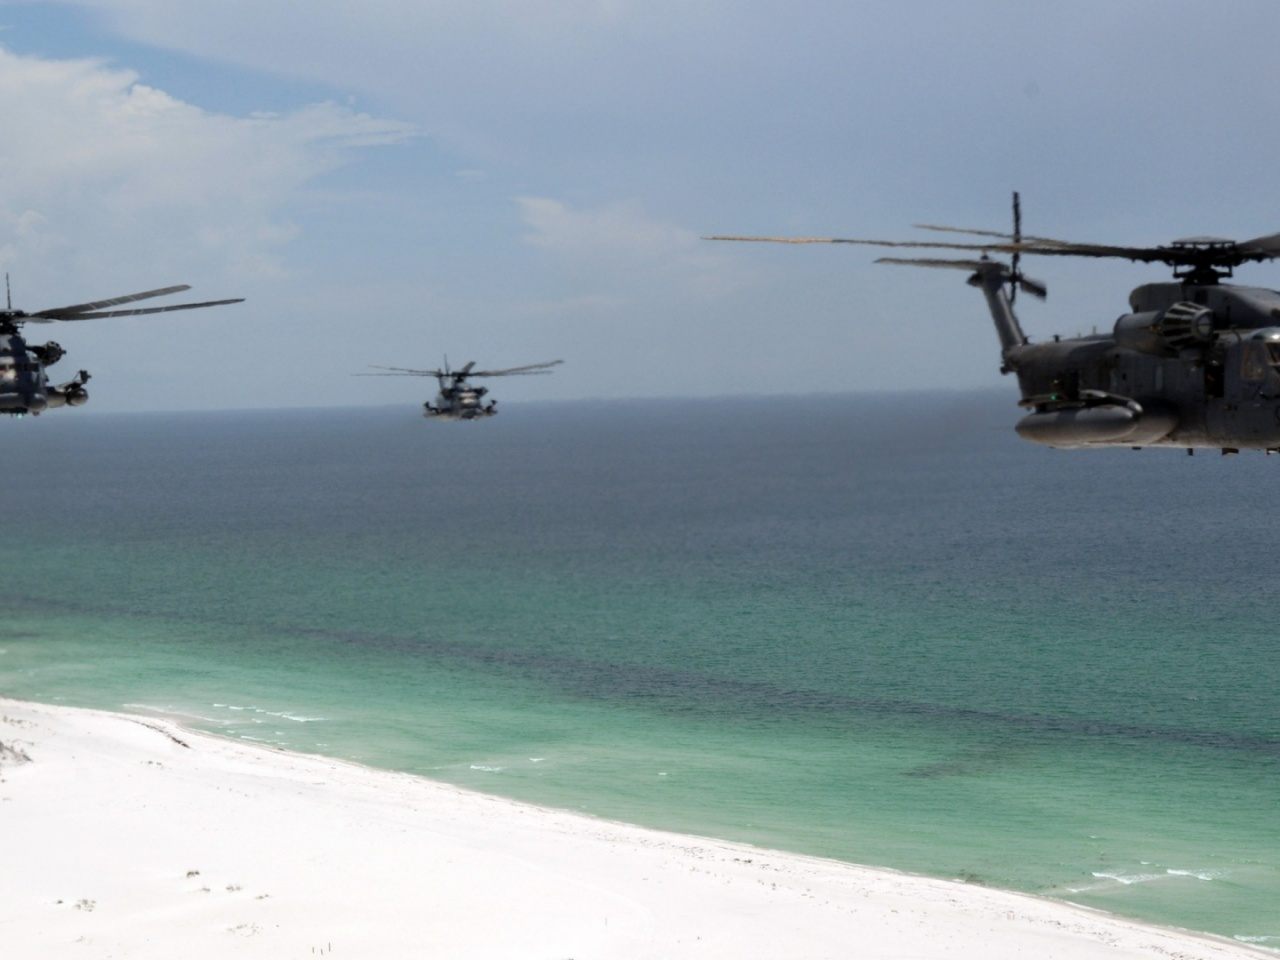 1280x720 Helicopter, beach, choppers